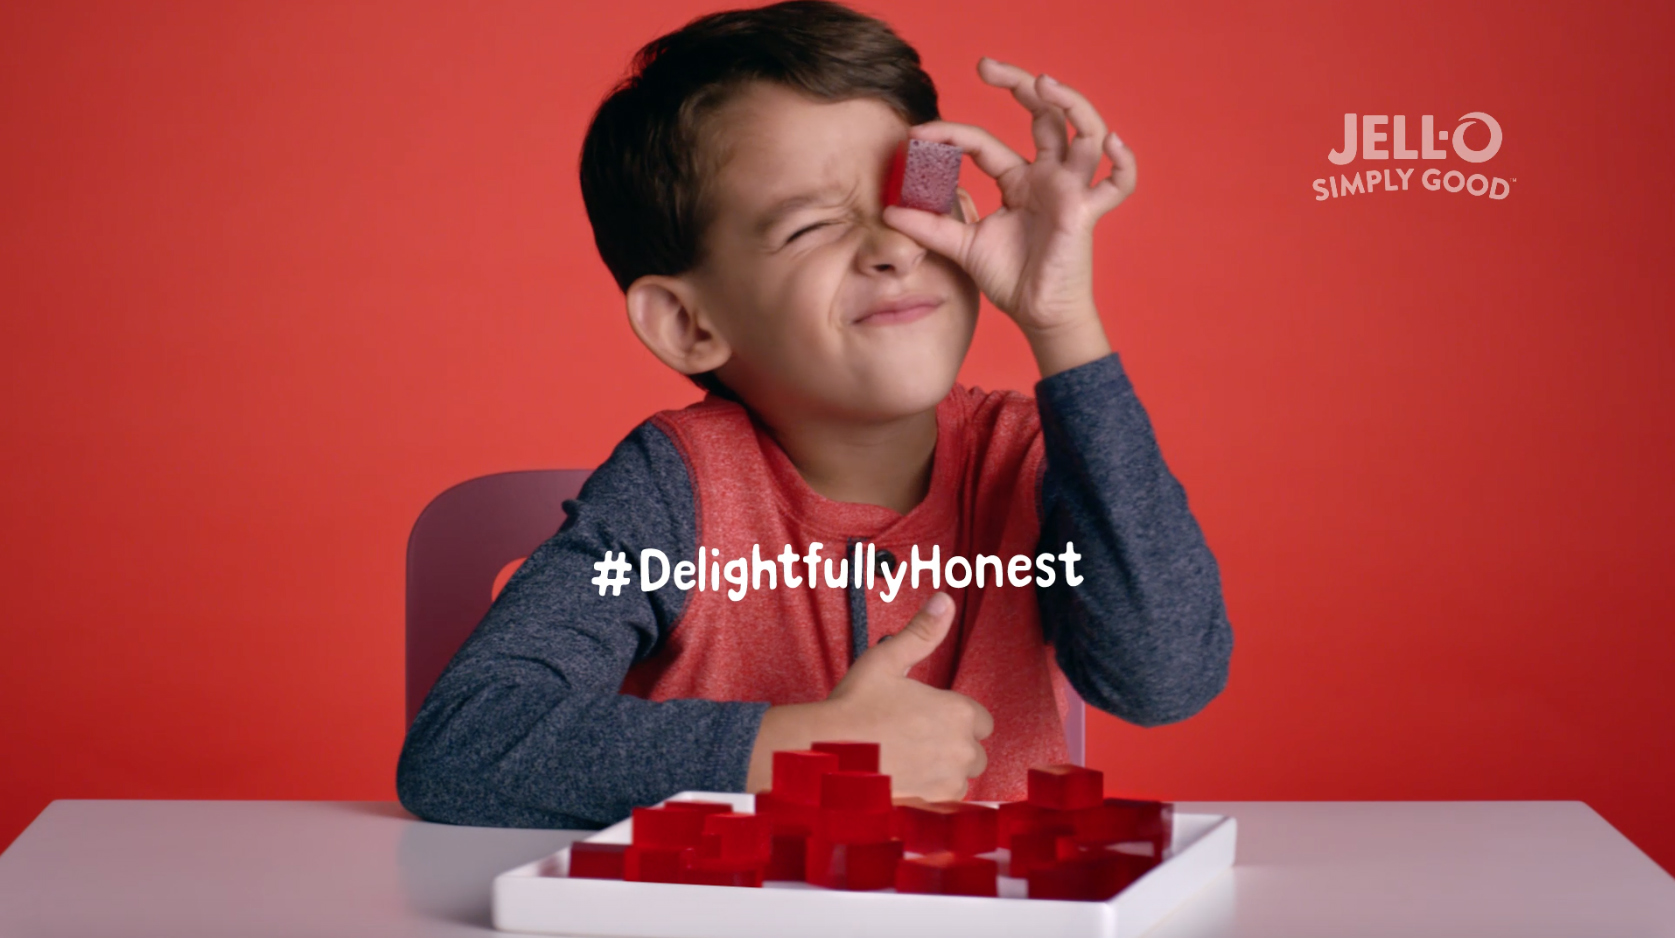 JELL-O SIMPLY GOOD is inviting parents nationwide to join in on the conversation and asking they share their kids' unfiltered honesty with #DelightfullyHonest.